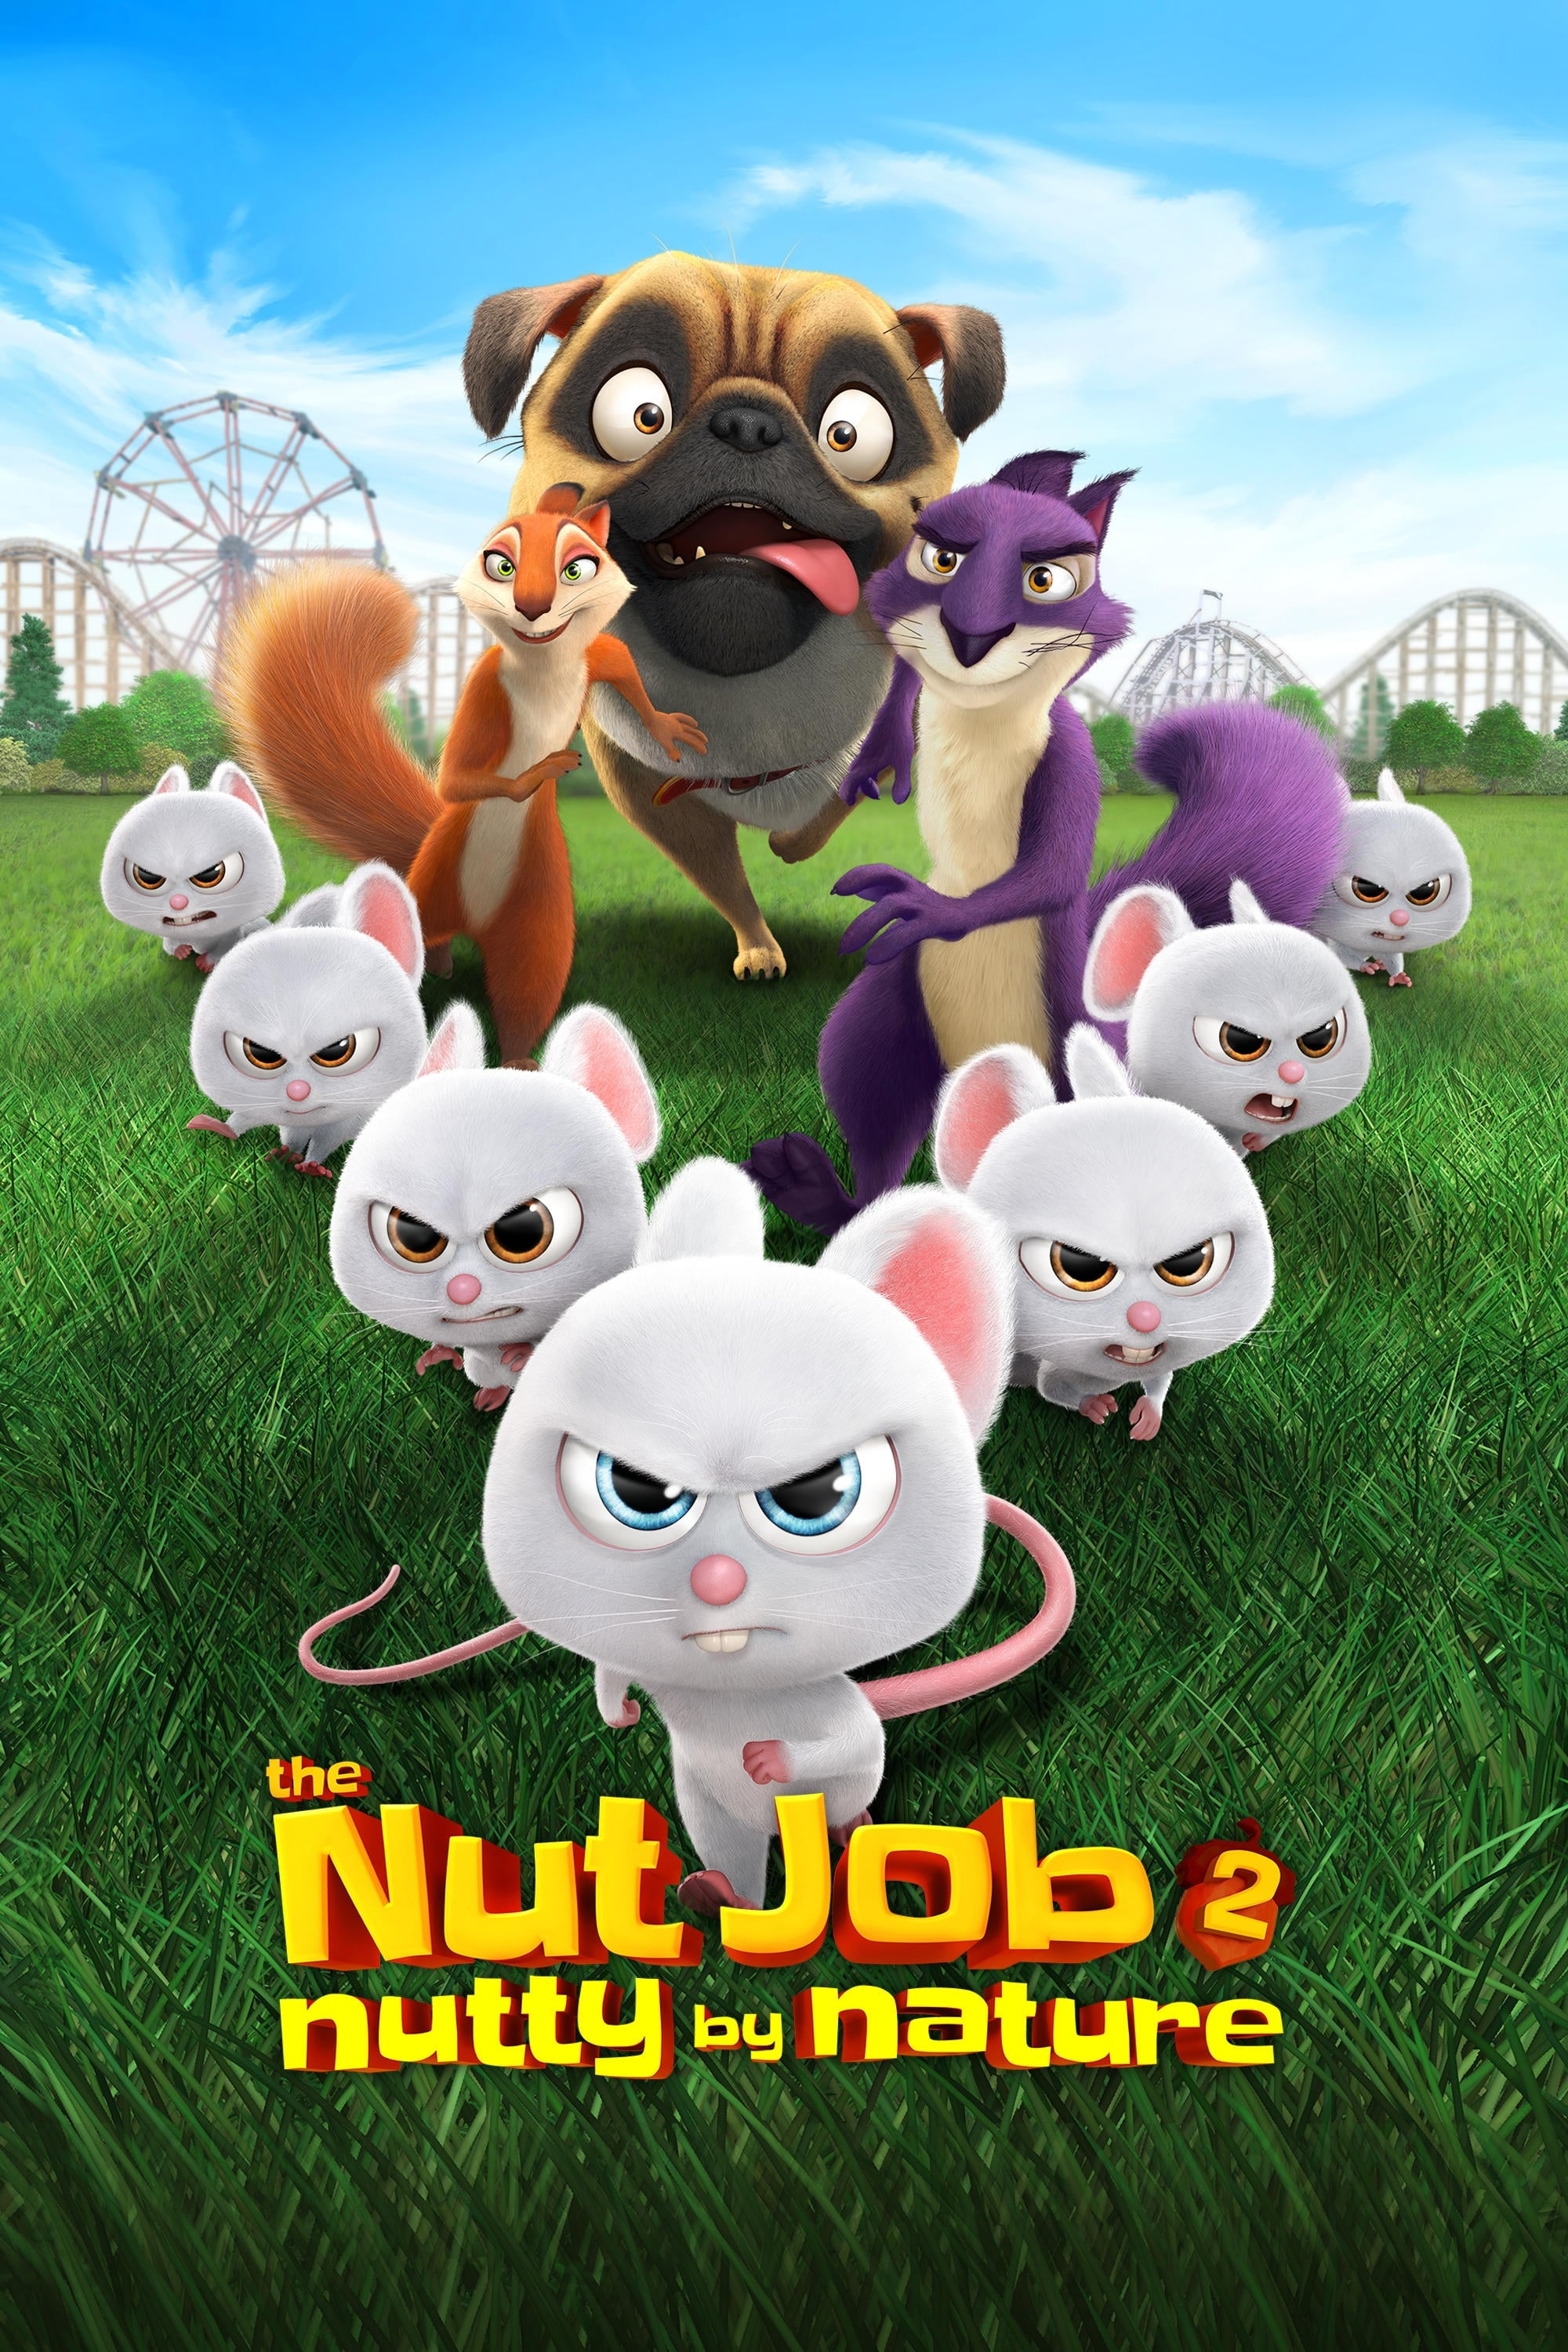 image for The Nut Job 2: Nutty by Nature